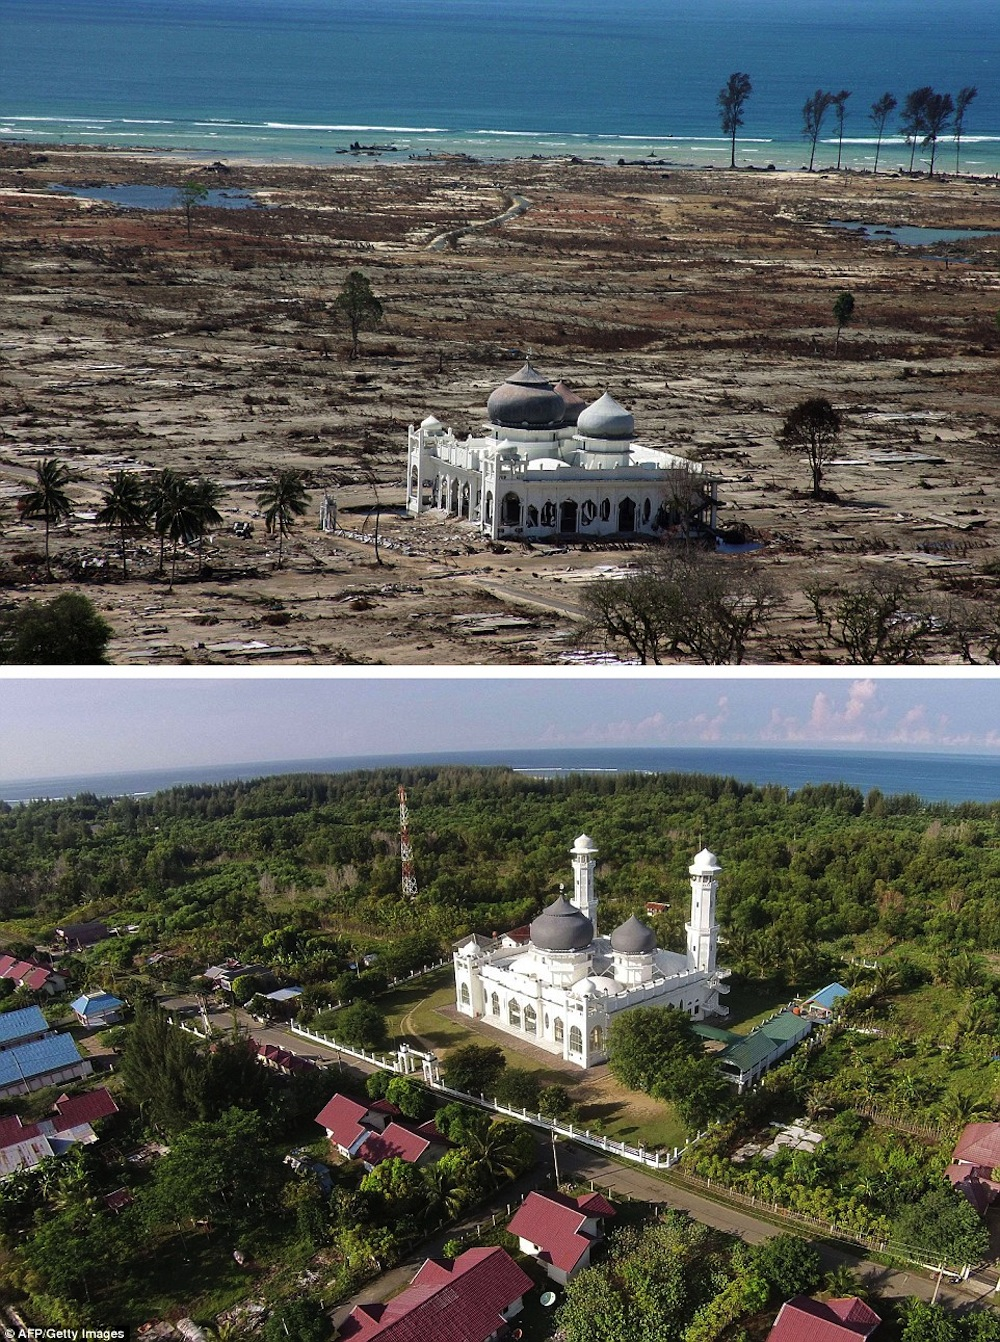 10 Amazing Before and After Shots Of The 2004 Tsunami in ...